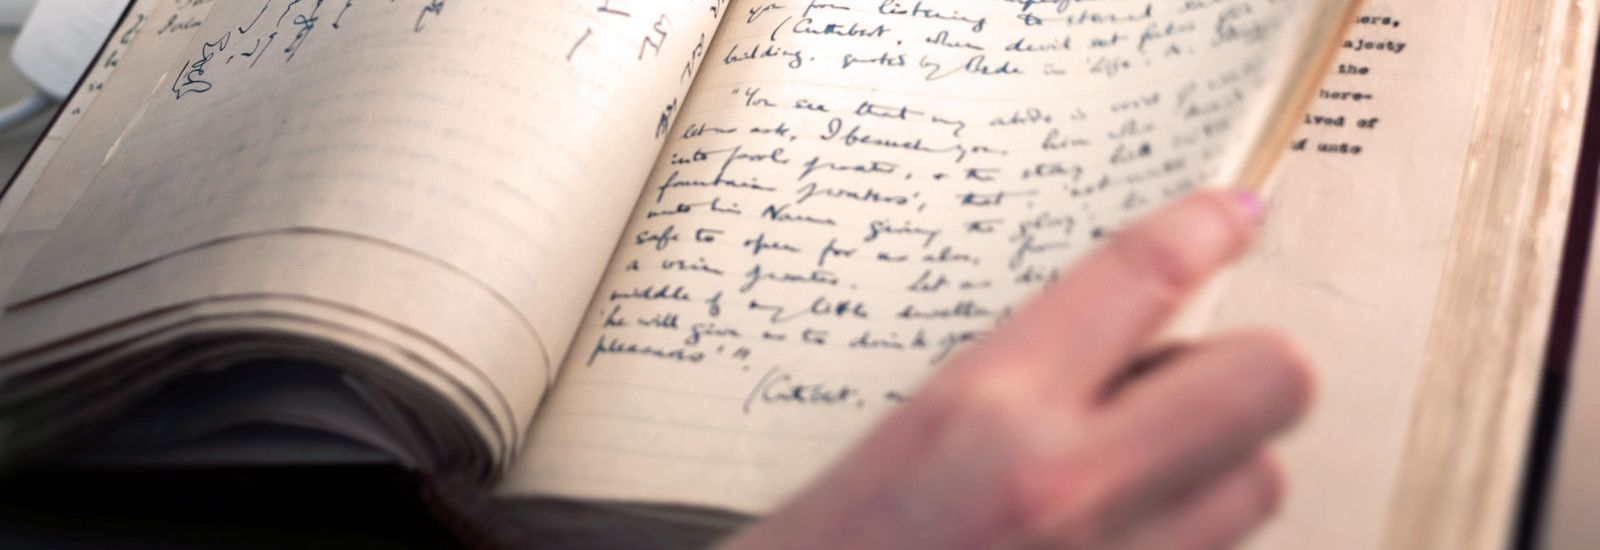 A close up of a book with handwritten text inside